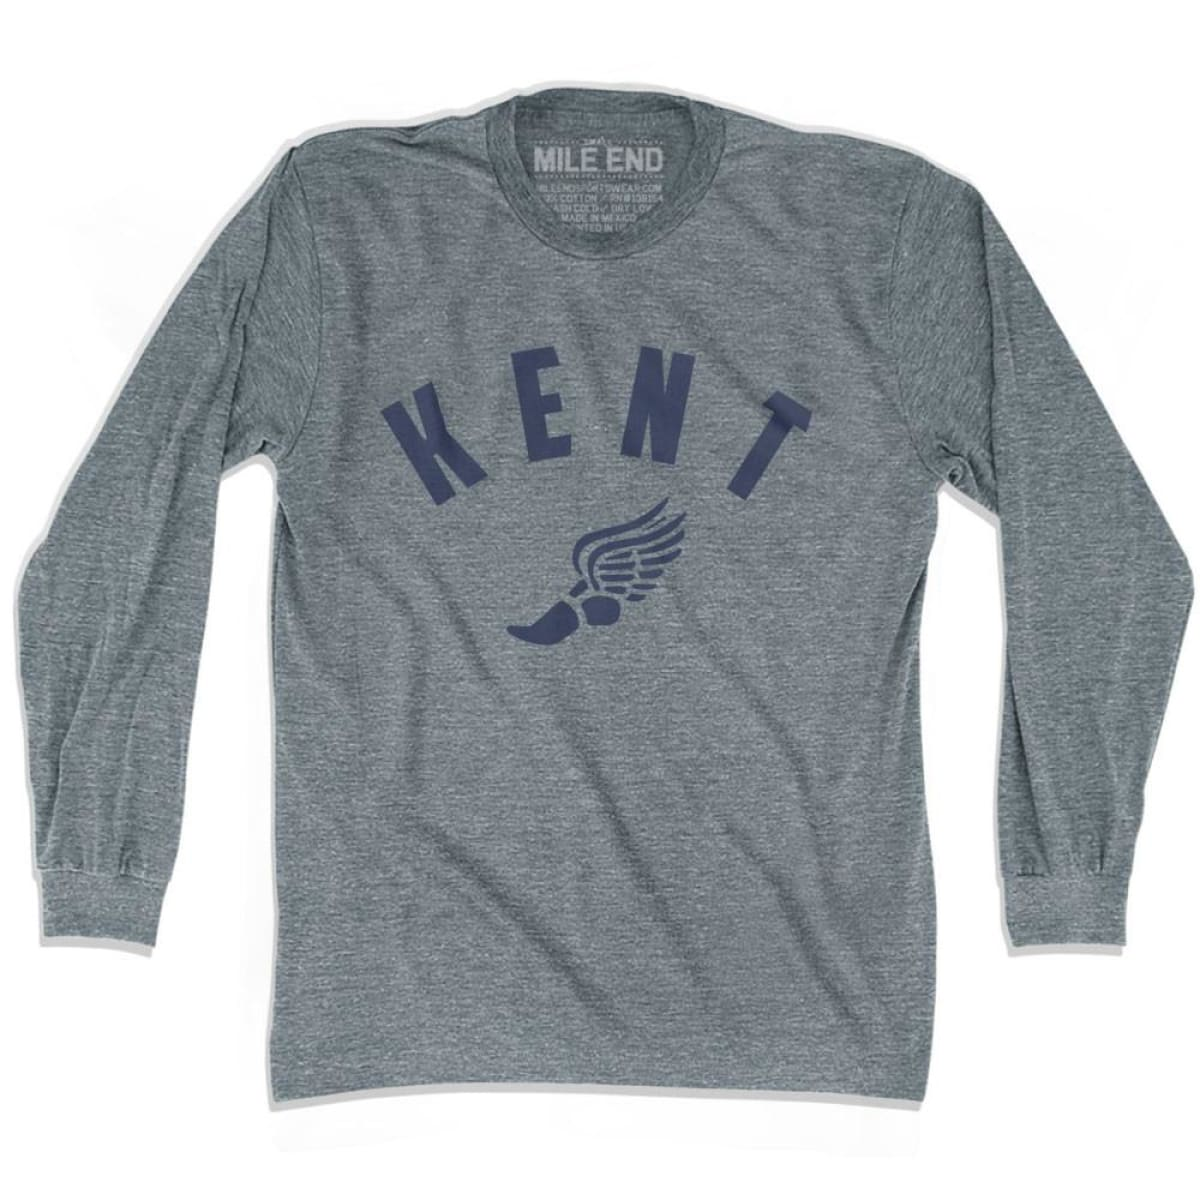 Kent Track Long Sleeve T-shirt - Athletic Grey / Adult X-Small - Mile End Track